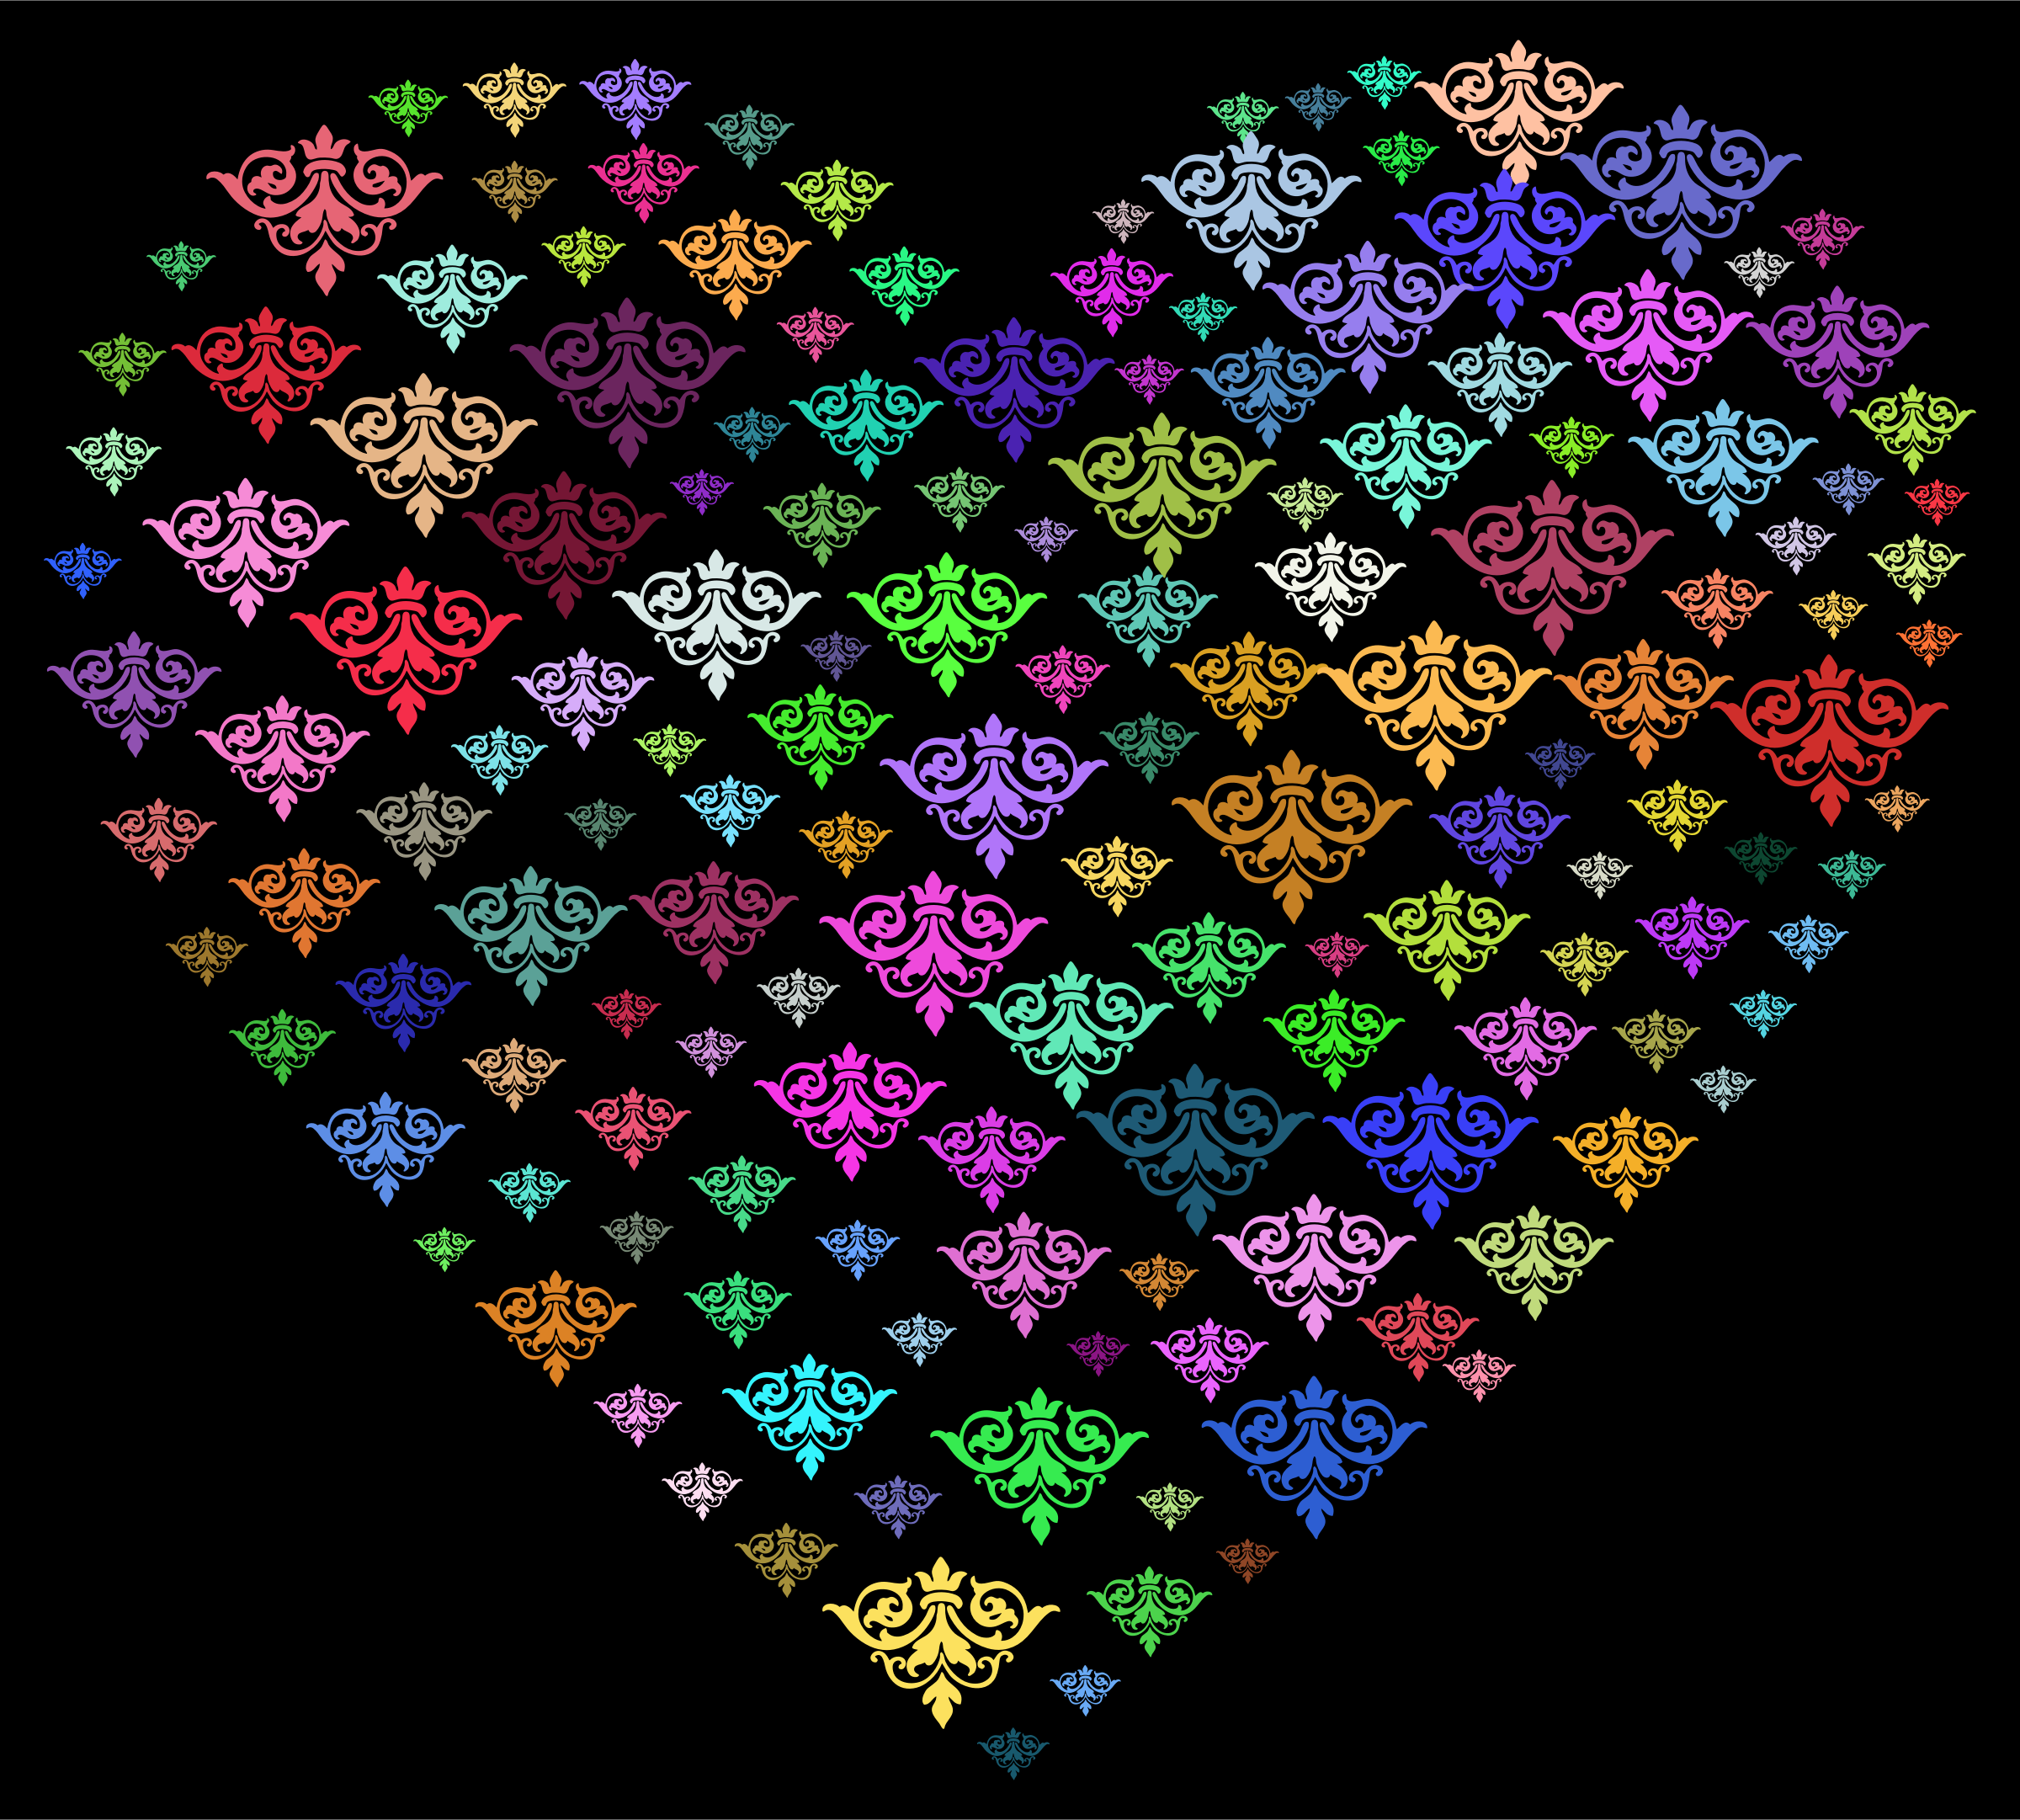 Prismatic Damask Heart by GDJ